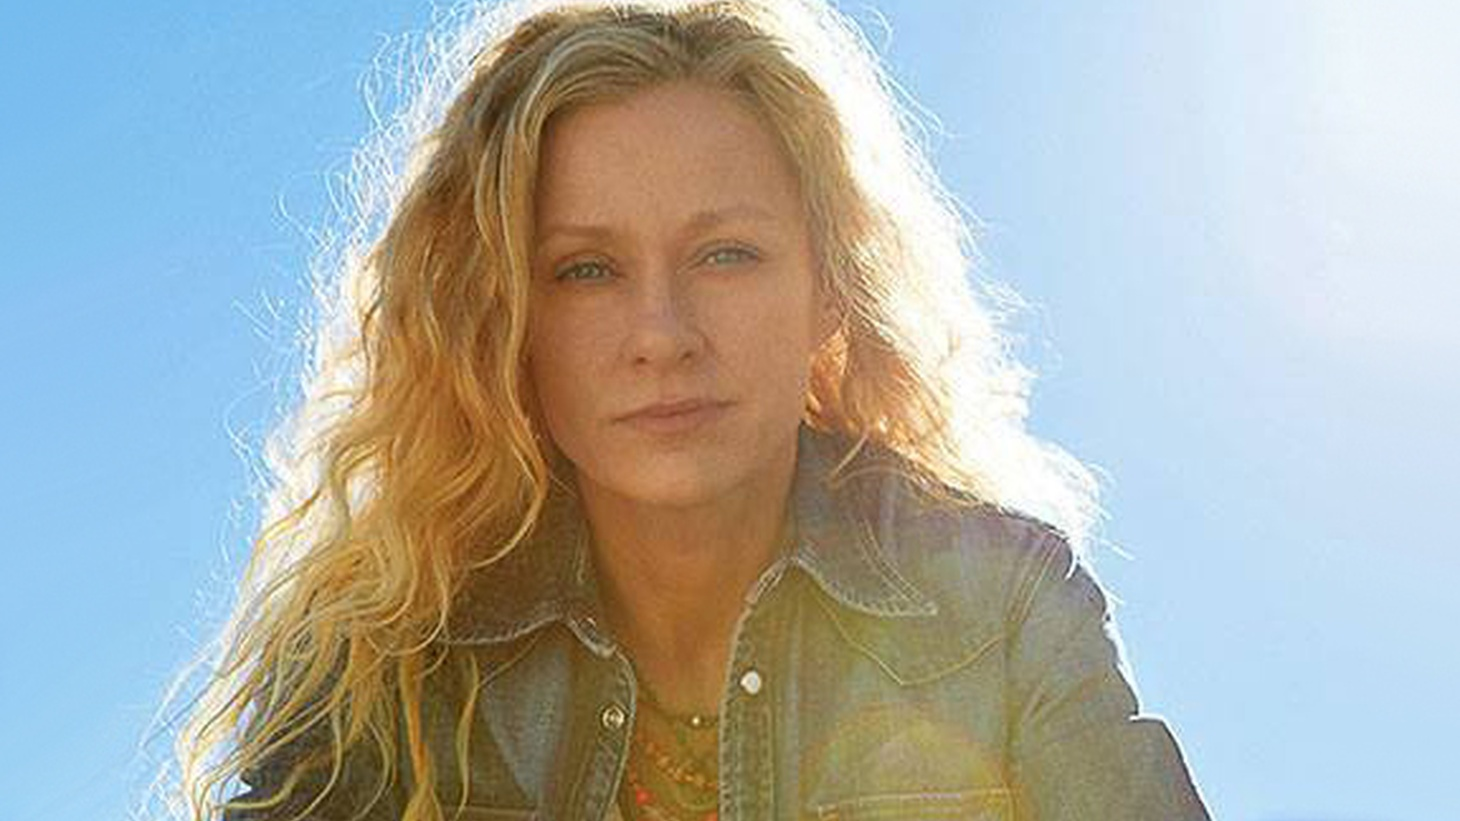 On her thirteenth album, Grammy-Award winning singer-songwriter Shelby Lynne returned to the South and produced a stunning collection that features top notch studio musicians.